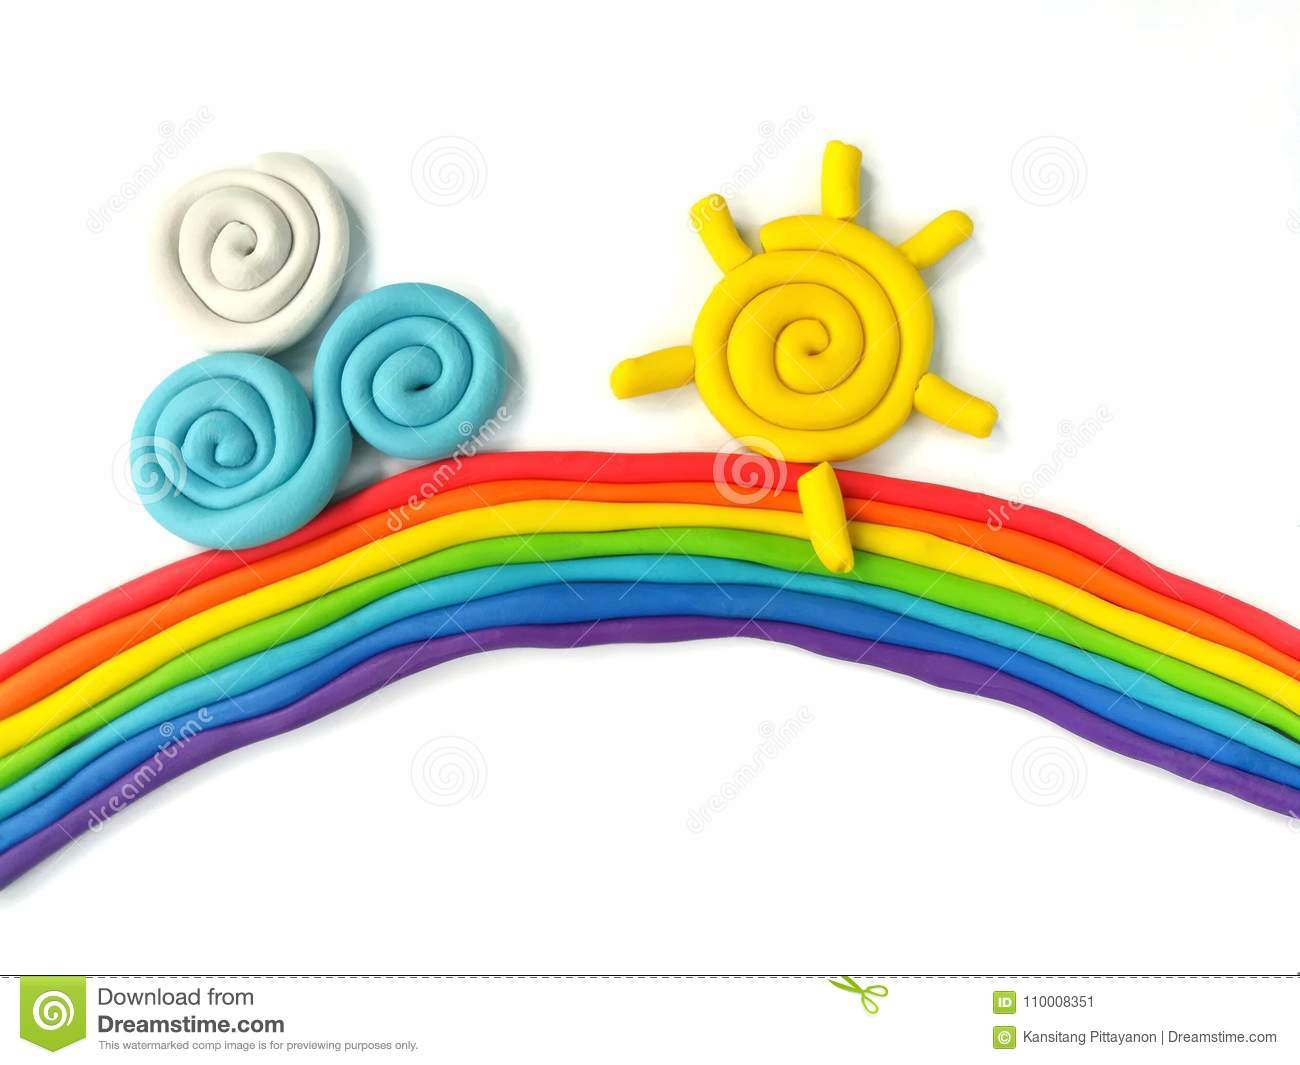 Colorful plasticine clay, beautiful sky dough, rainbow sun cloud handmade, white background